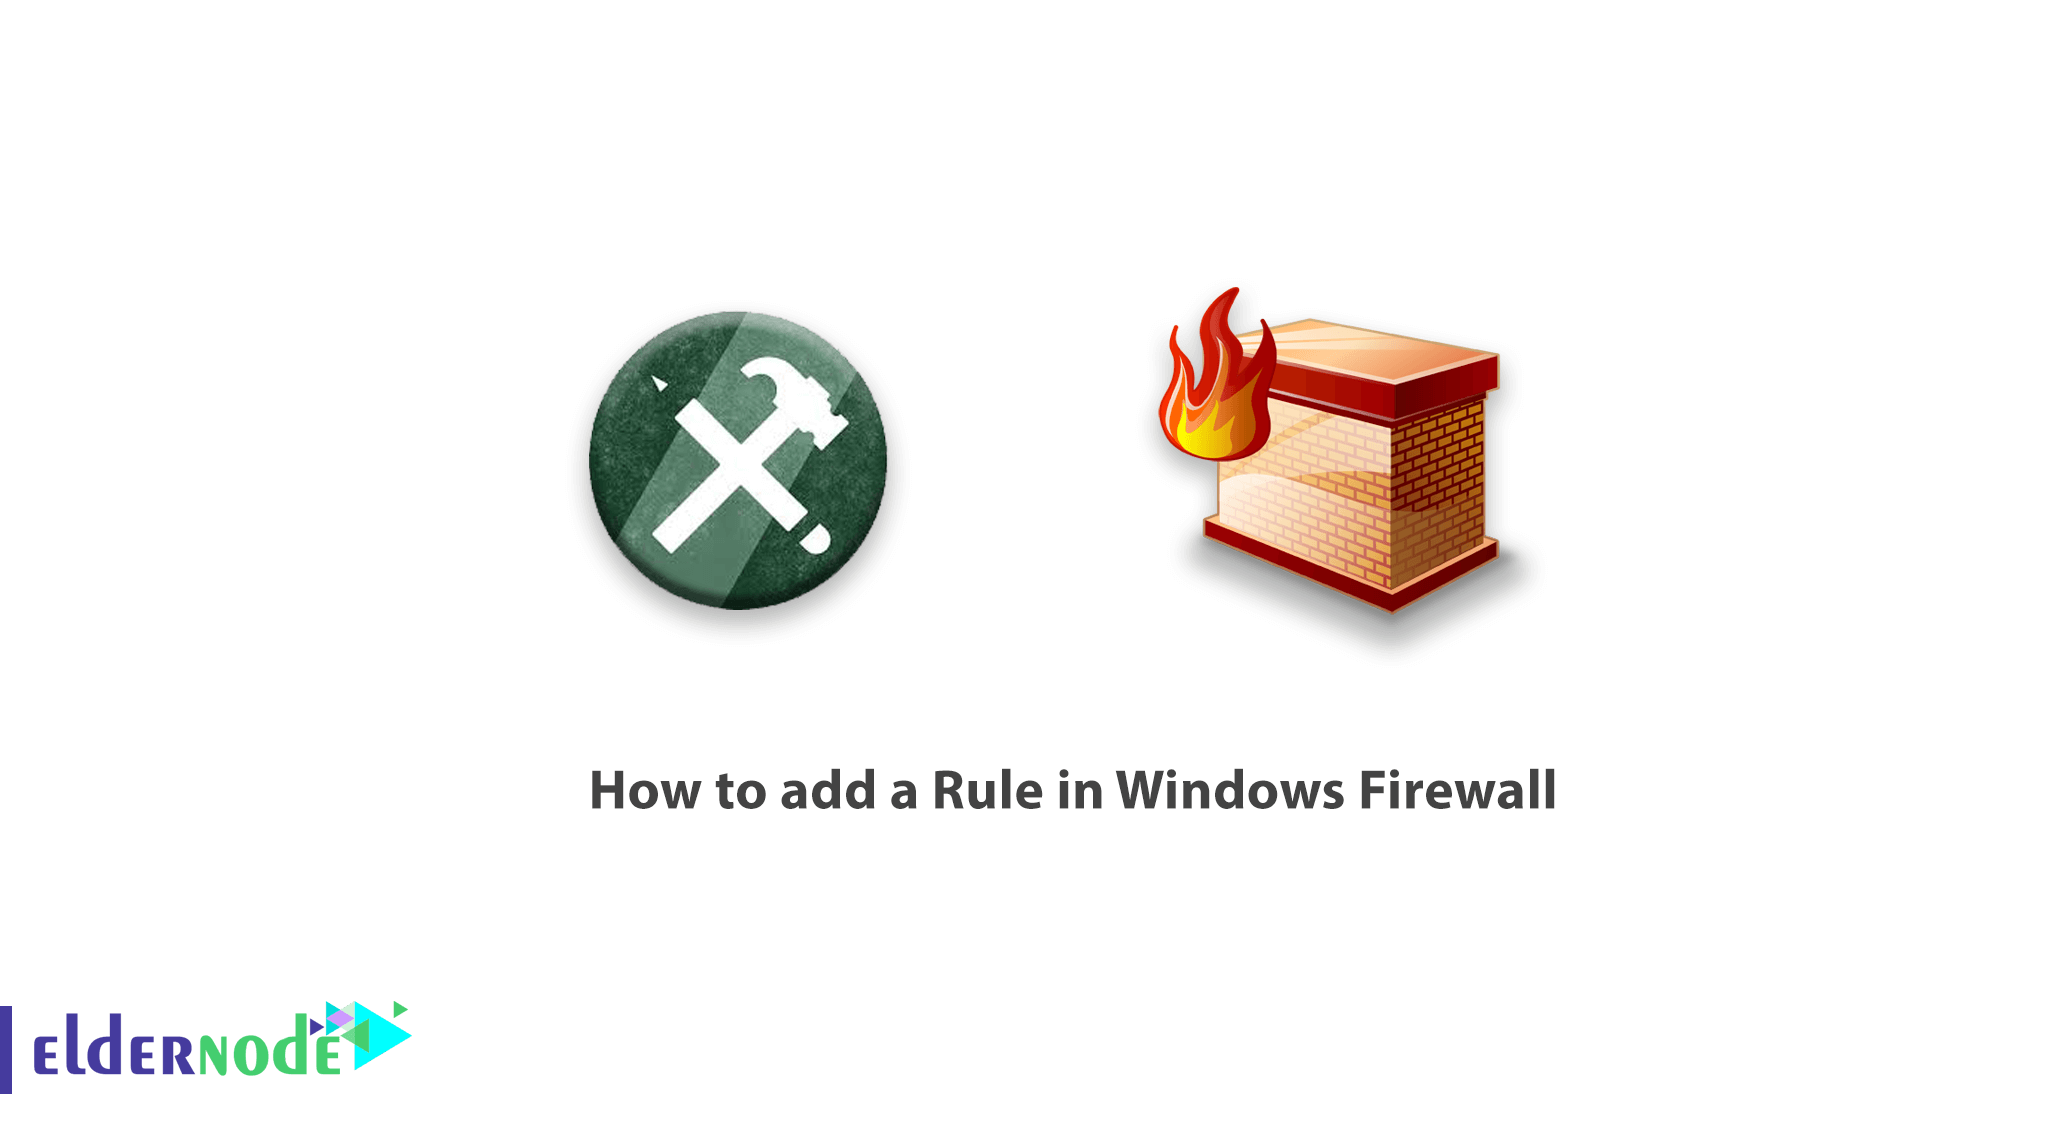 How to add a Rule in Windows Firewall